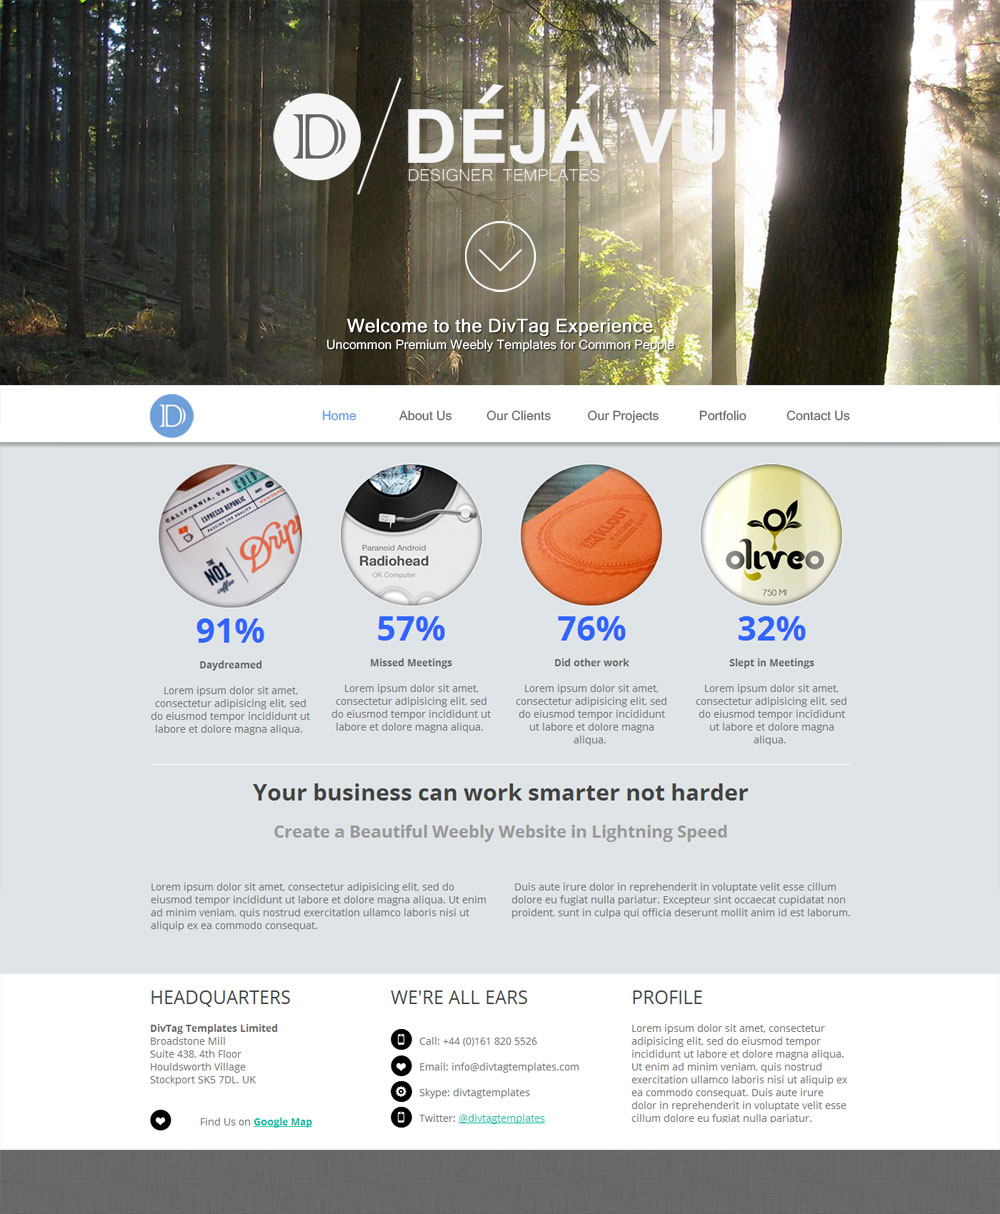 Free Weebly Themes And Templates | Weebly Templates Deja Vu Theme Premium Weebly Templates And